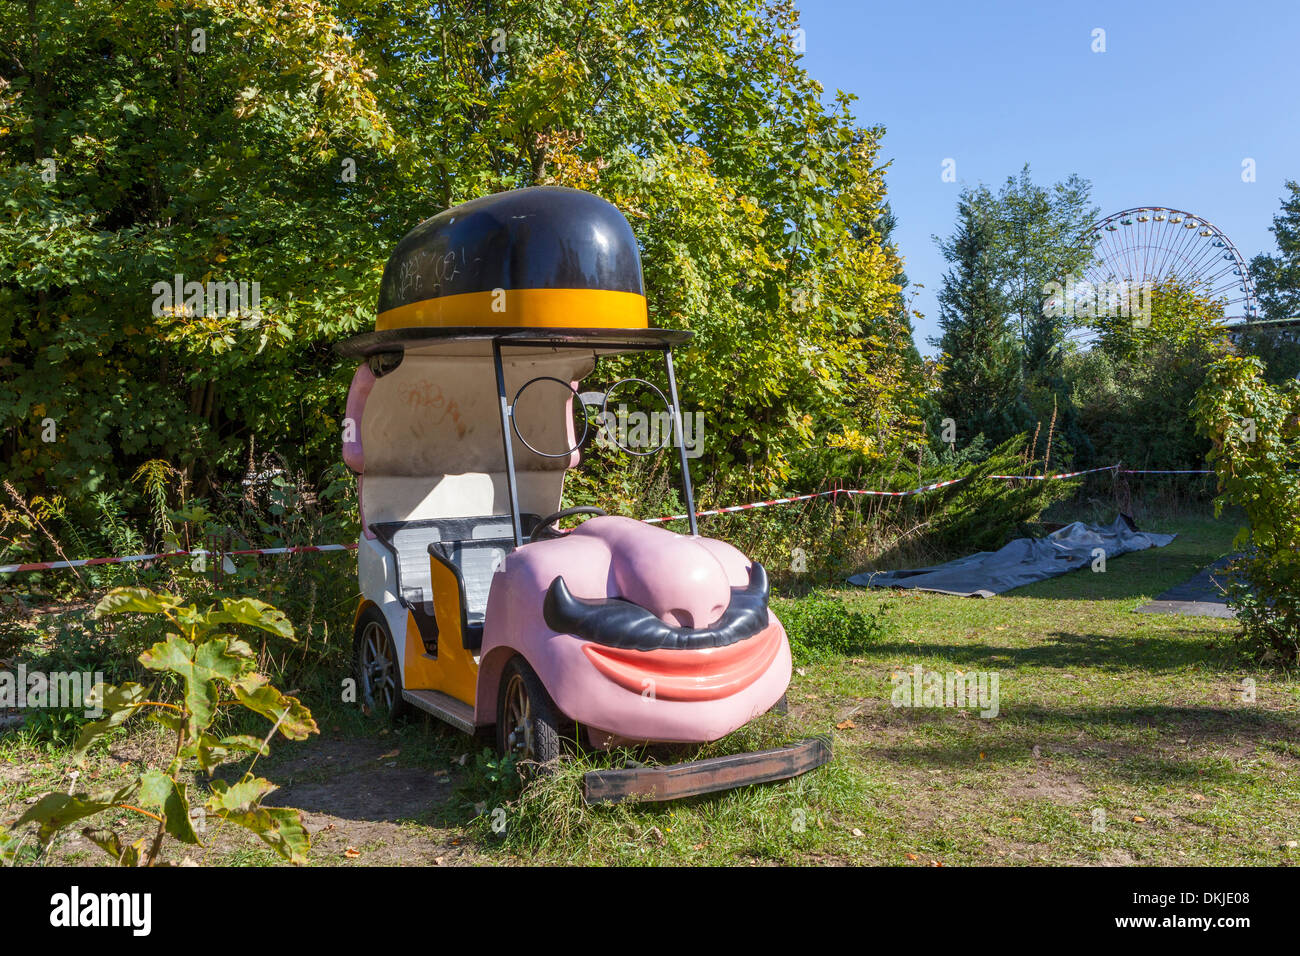 Old car from funfair ride at Spree Park (Kulturpark Plånterwald ...